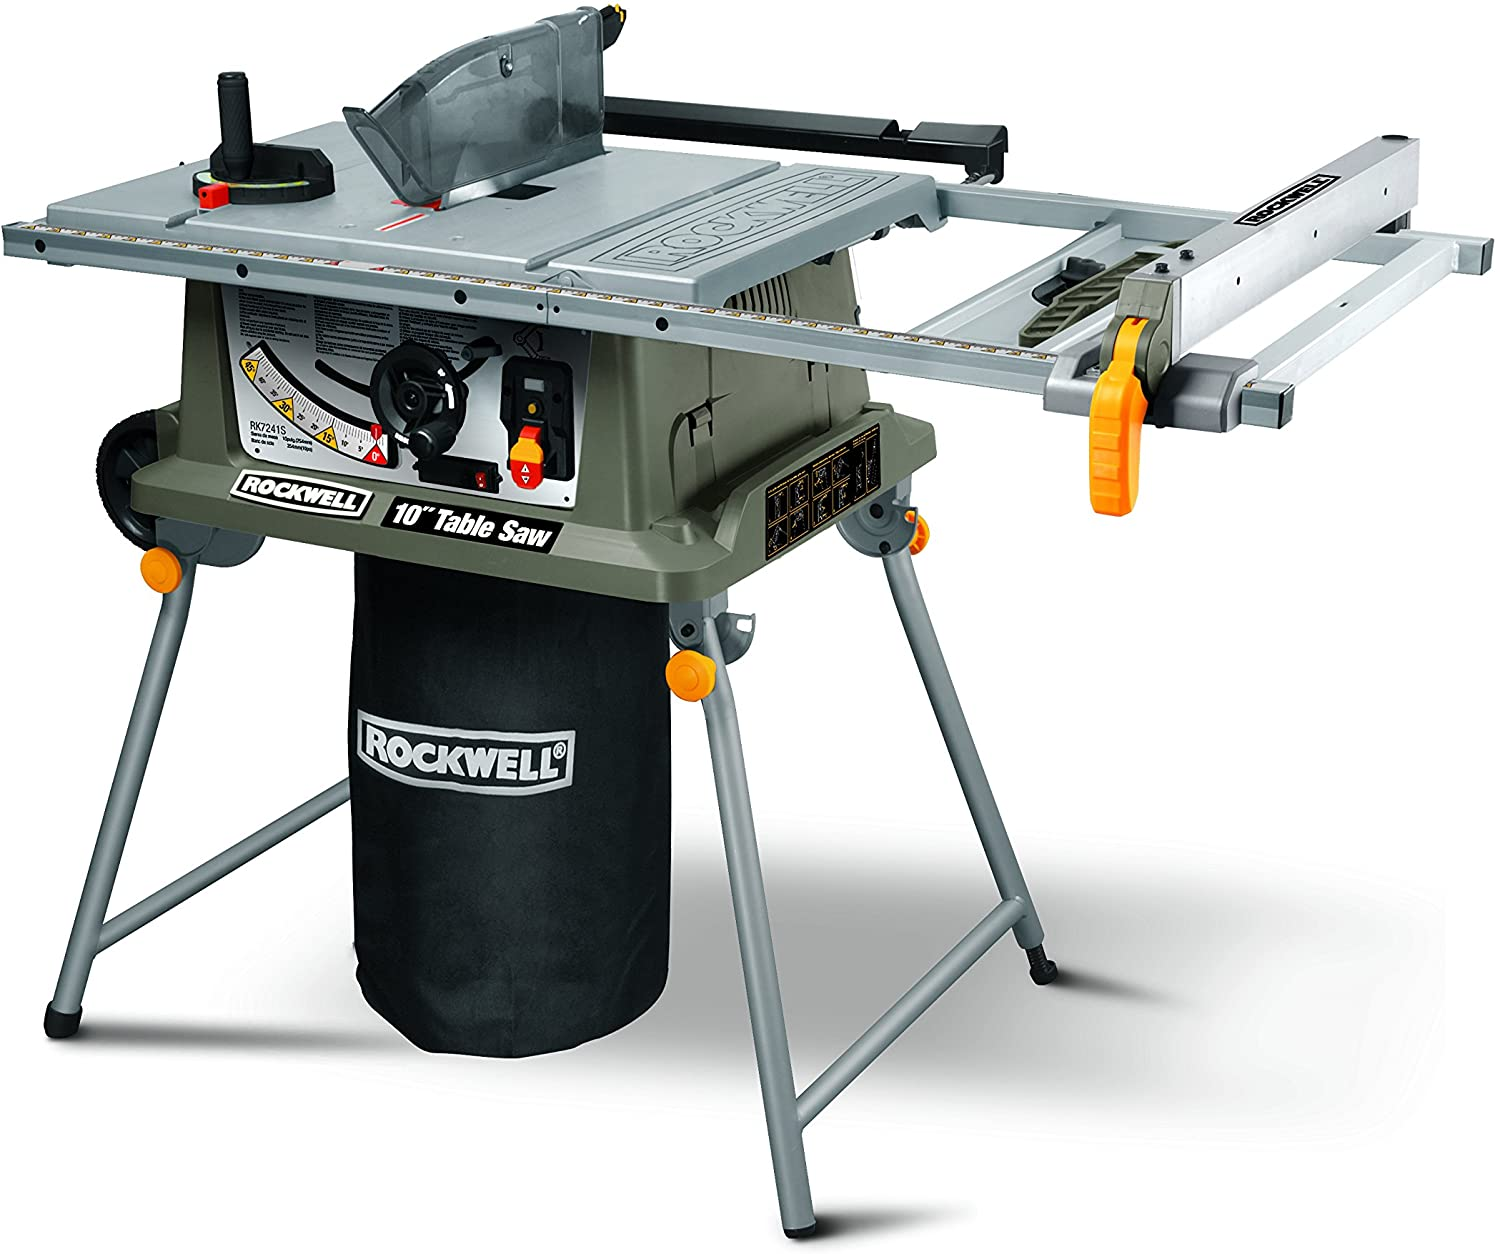 Rockwell RK7241S Hybrid Table Saw Under $1000